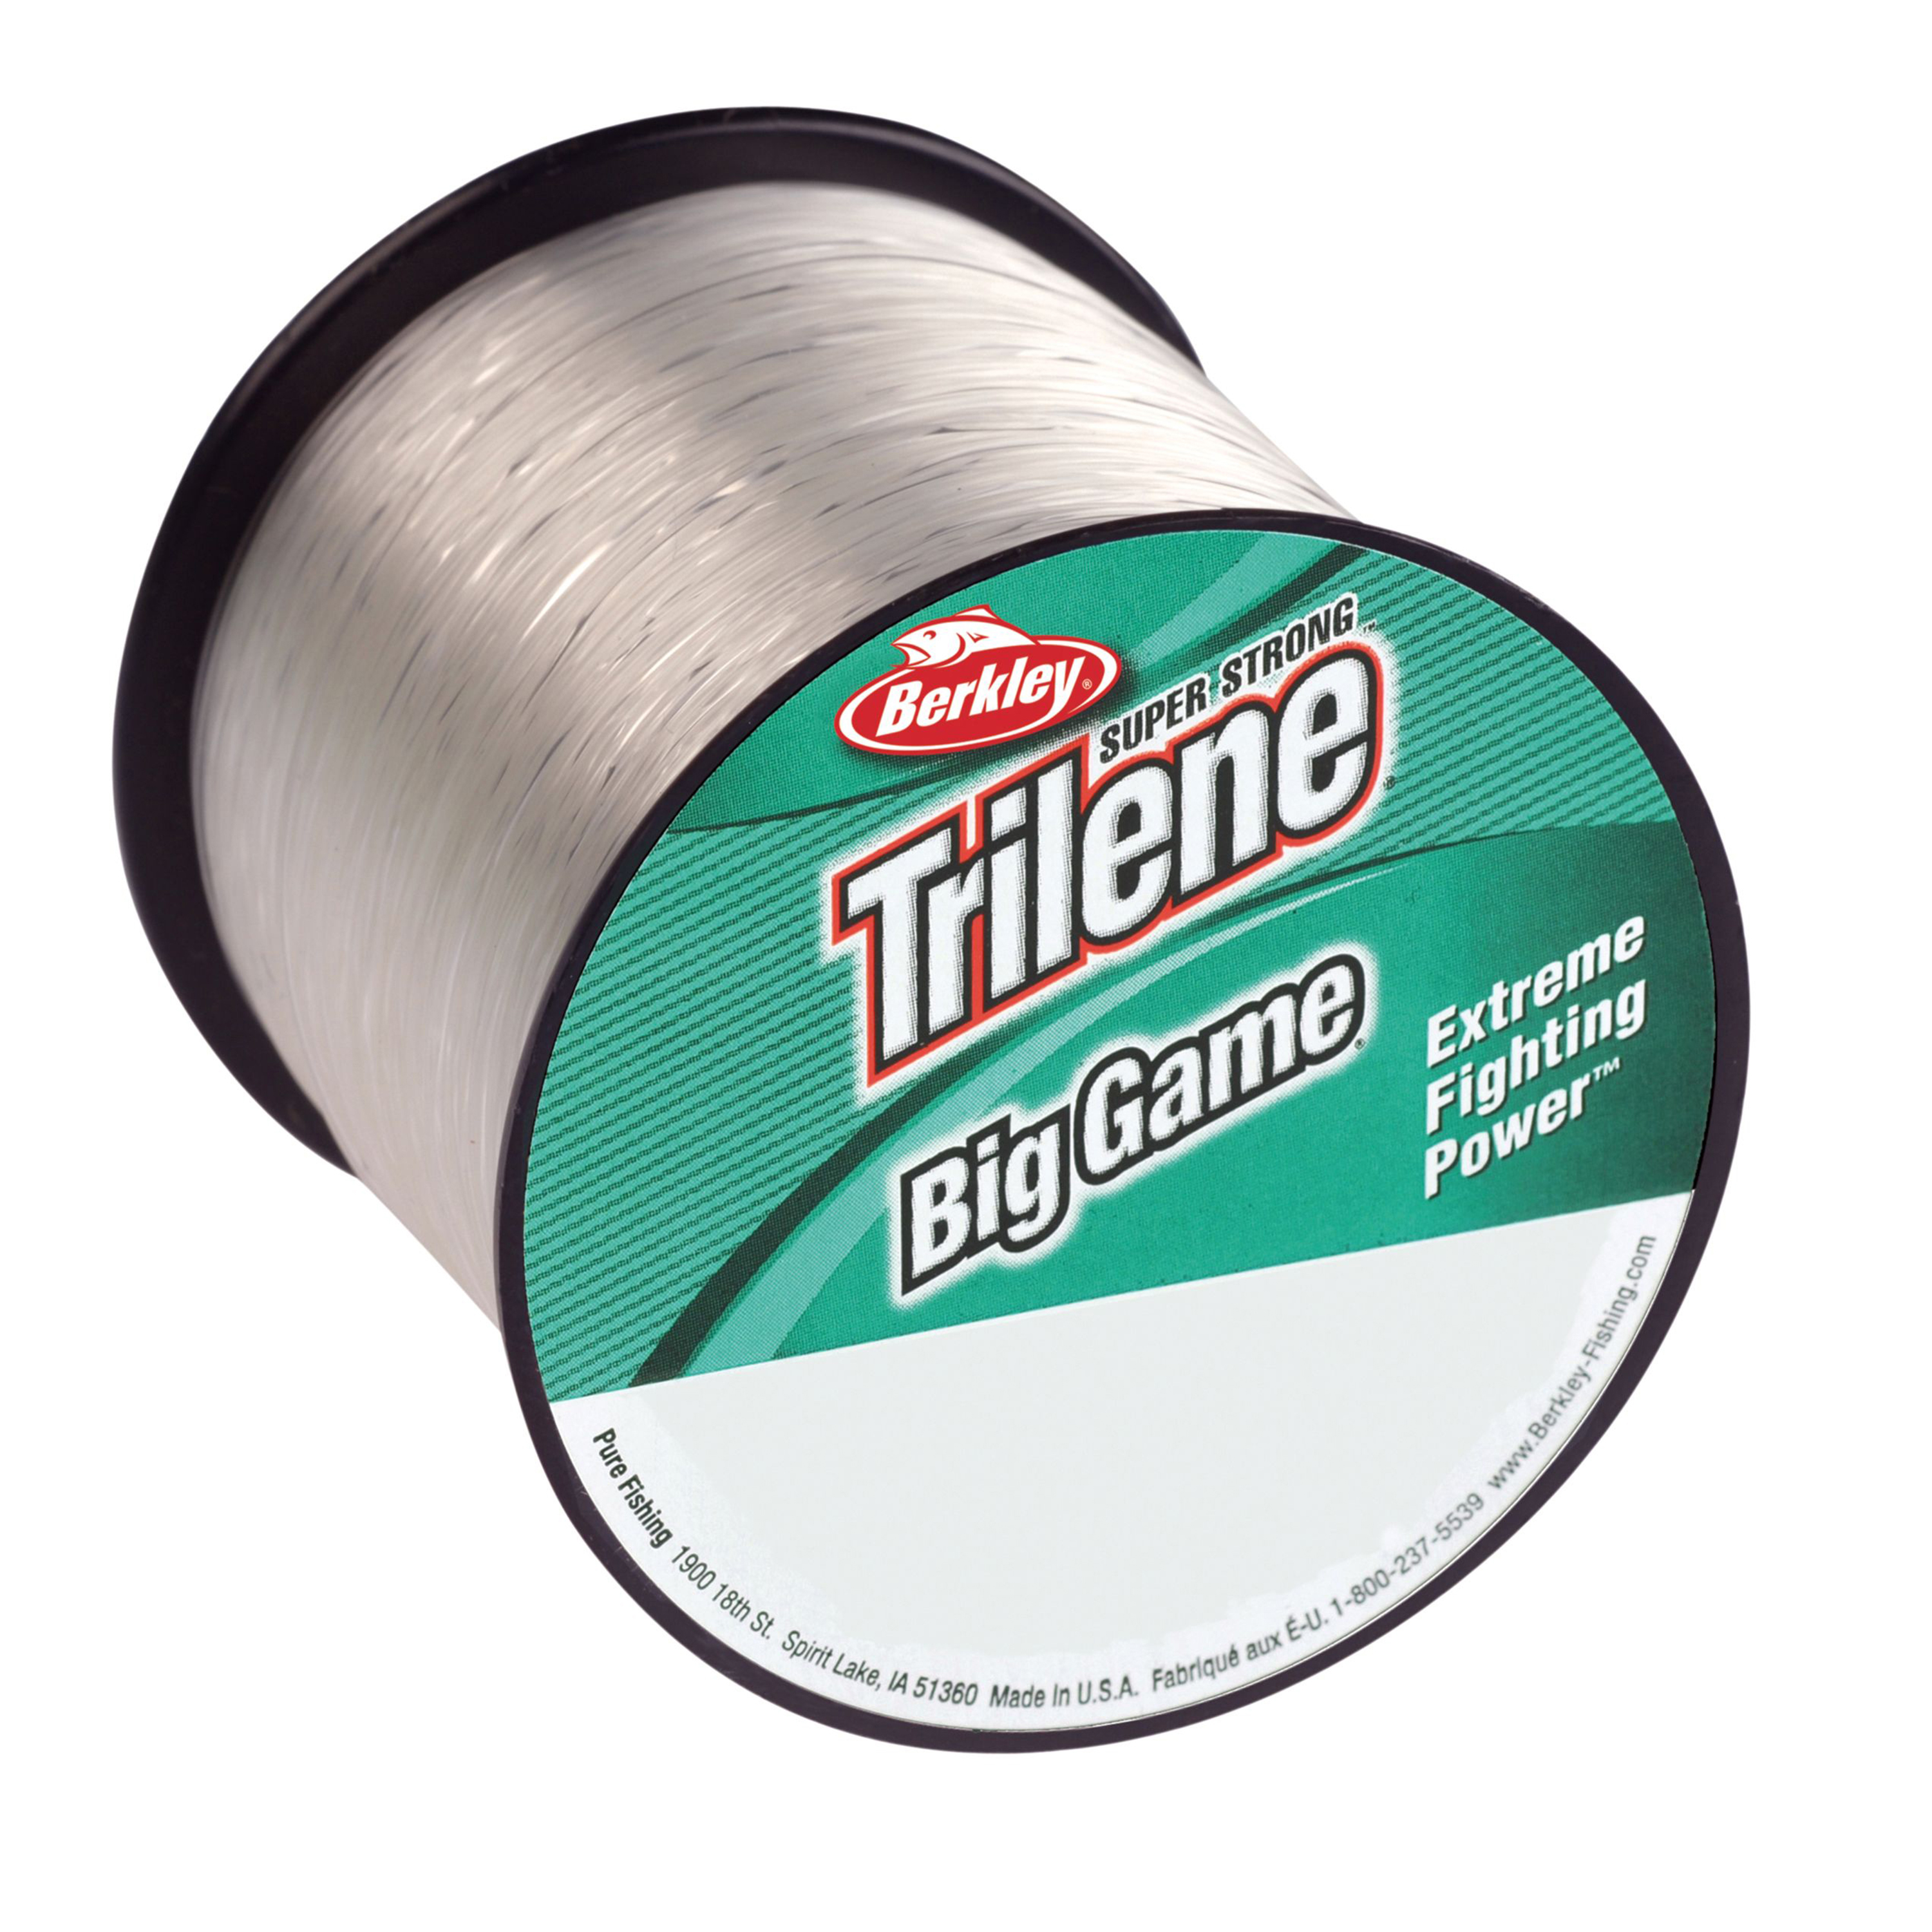 "Berkley Trilene Big Game Monofilament Line Spool 1500 Yards, 0.012"" Diameter, 10 lb Breaking Strength, Clear"